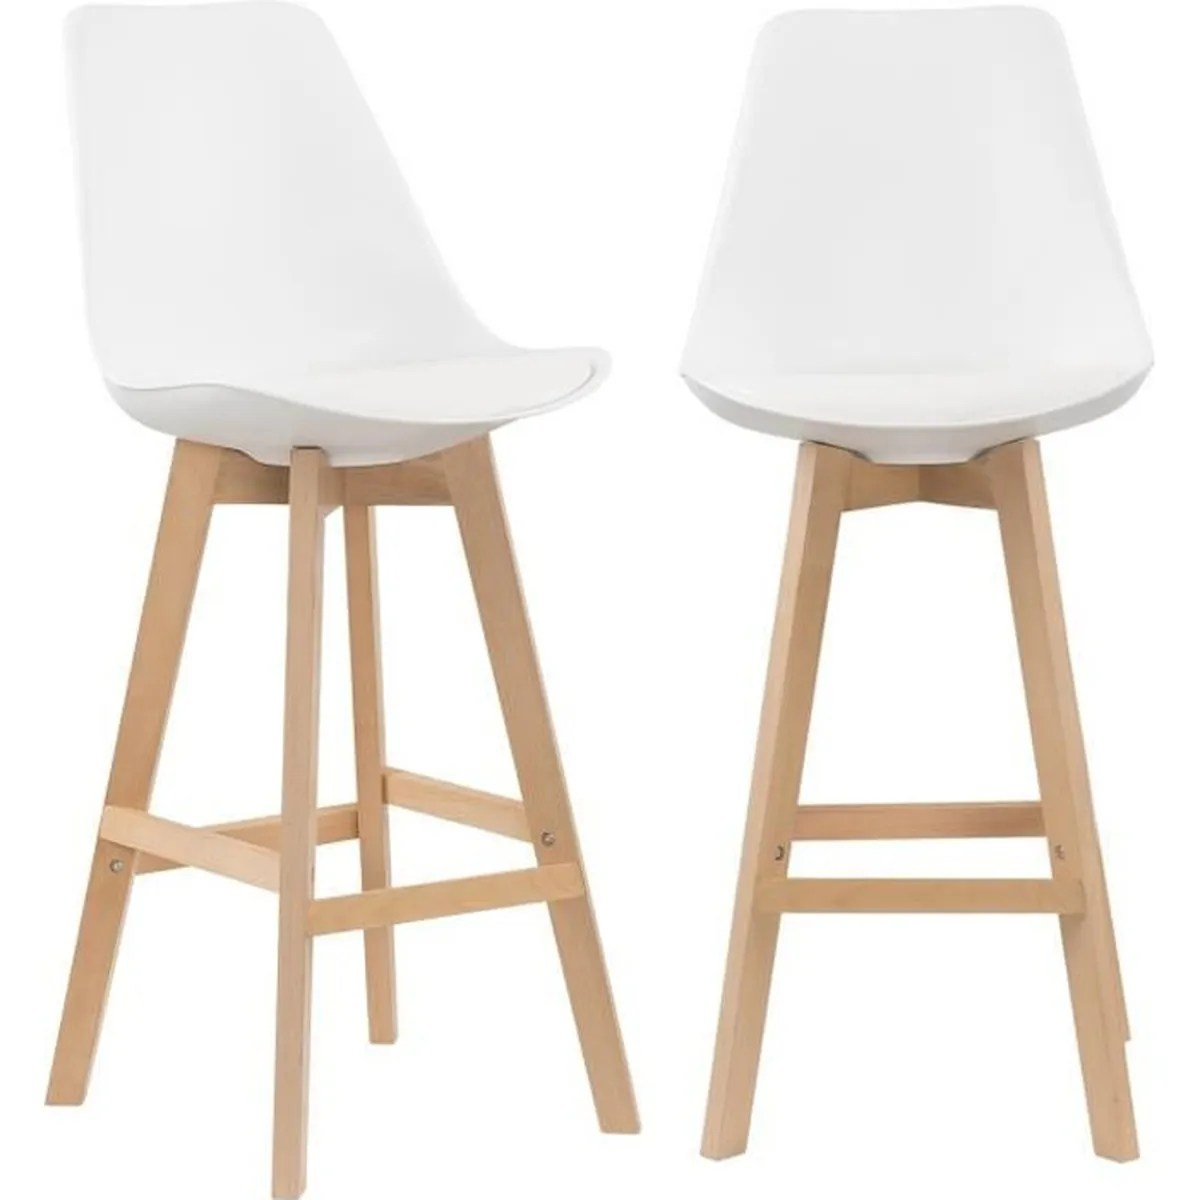 Charly Lot De 2 Tabourets De Bar Blancs Lot De 2 Tabourets De Bar Scandinave Blanc Pieds En Bois